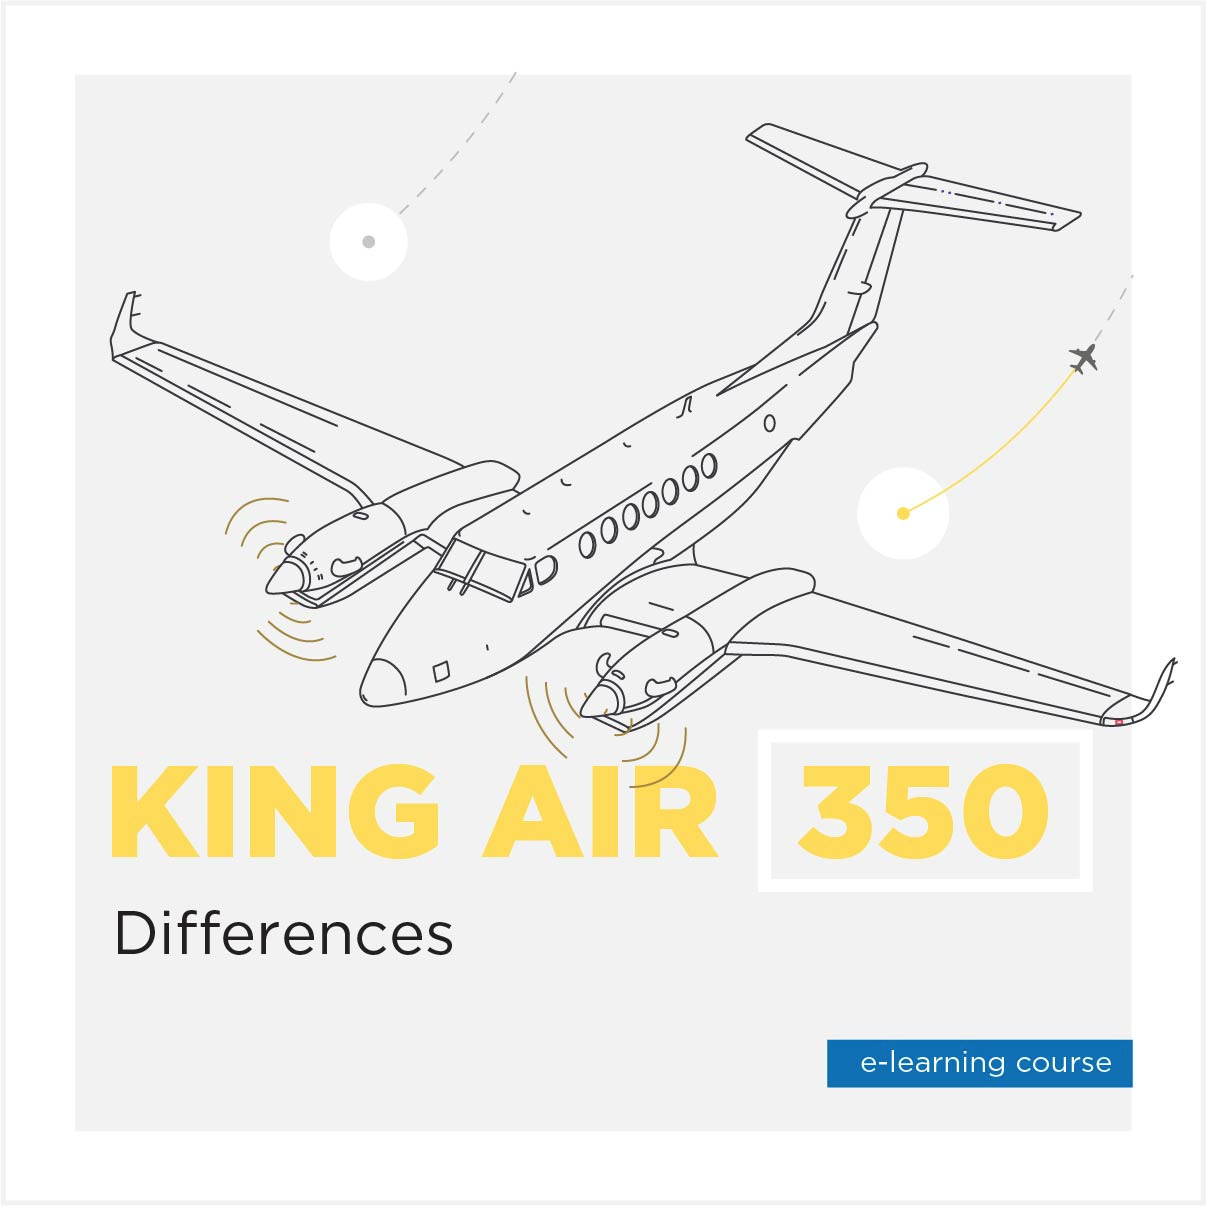 King Air 350 Differences